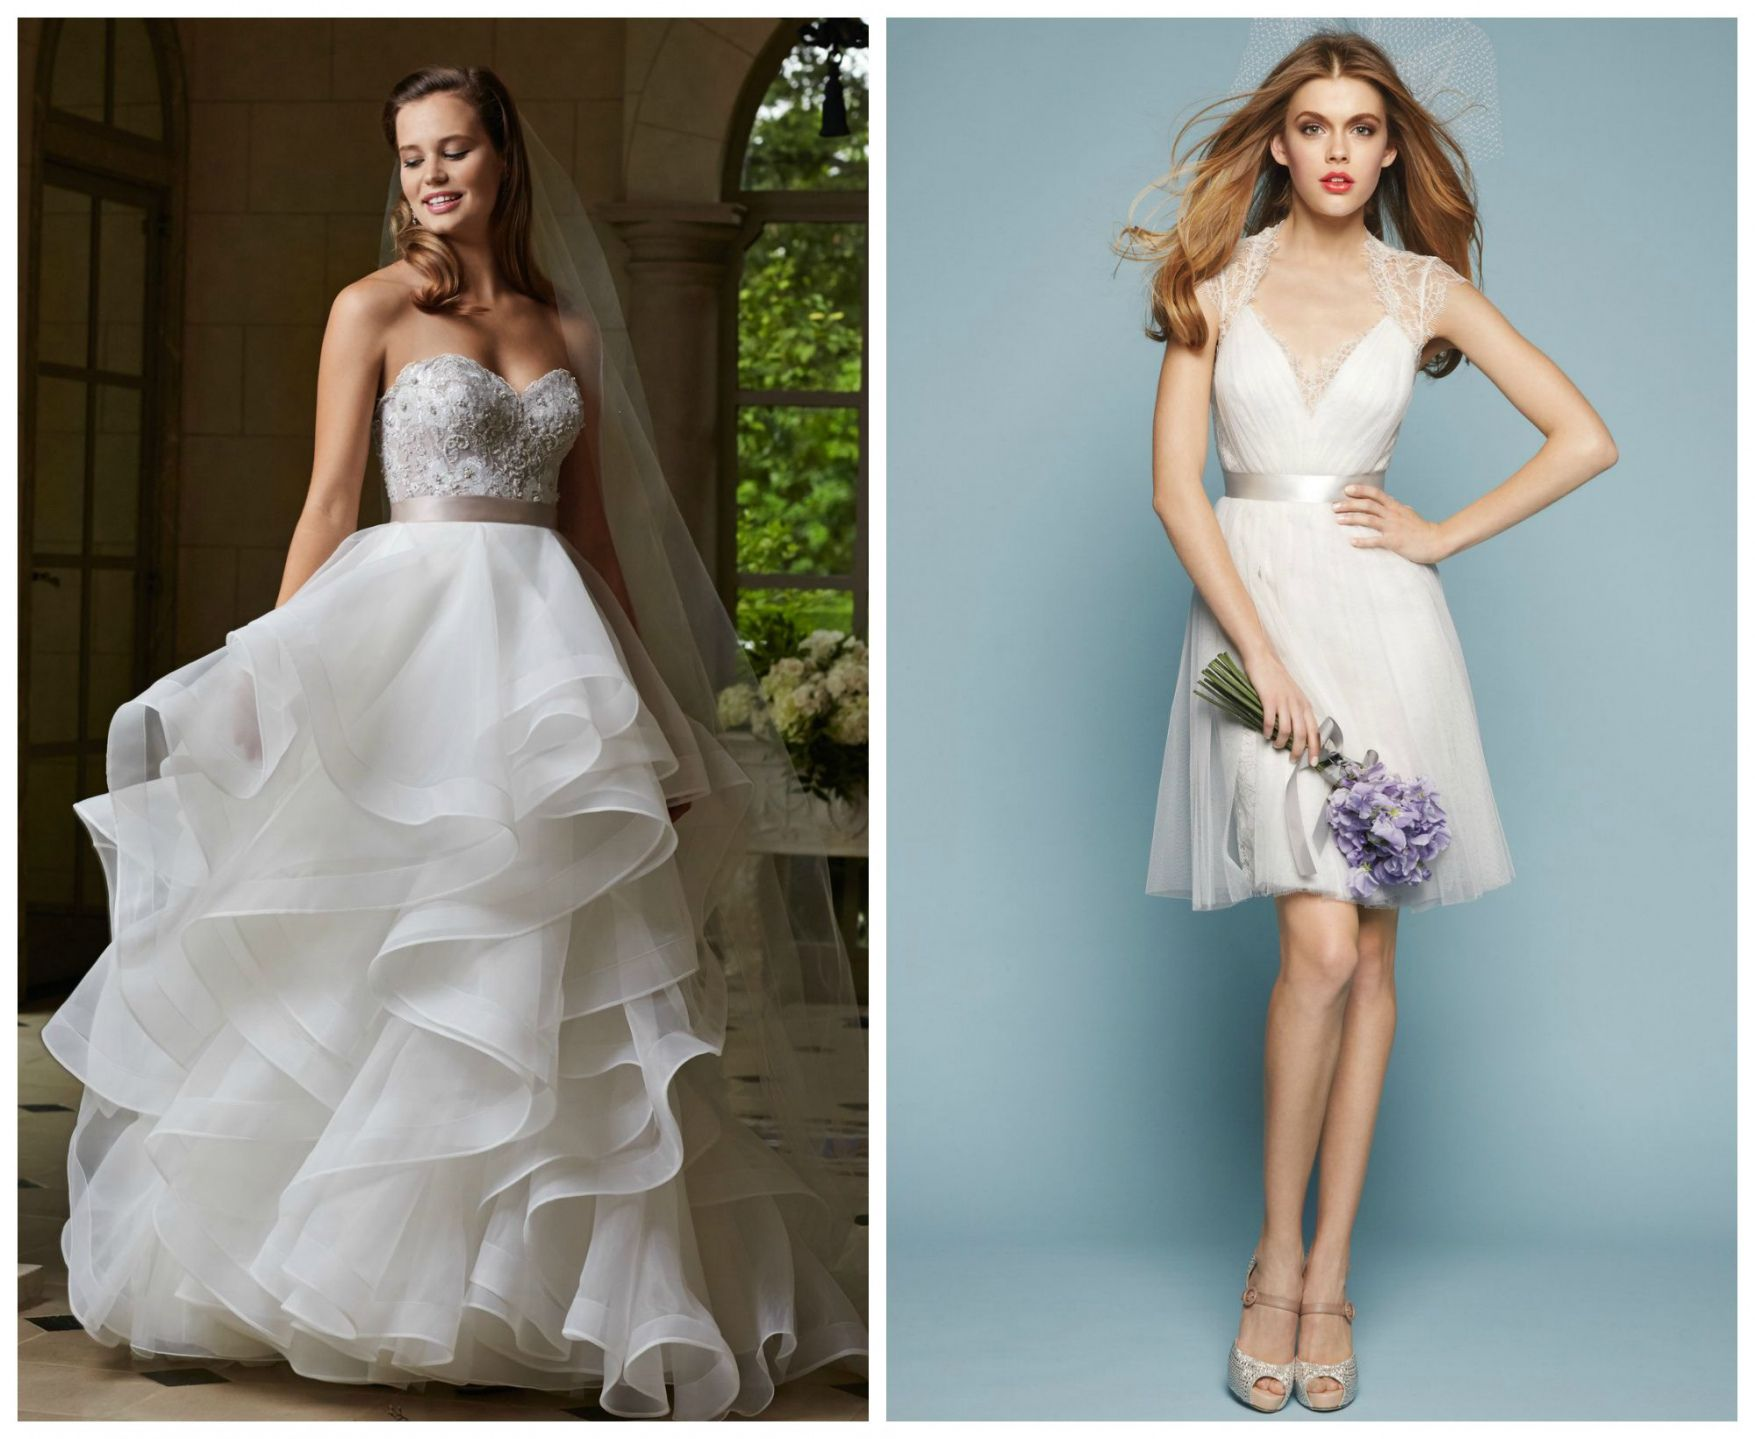 Colorful Cute Wedding Outfits Images - All Wedding Dresses ...